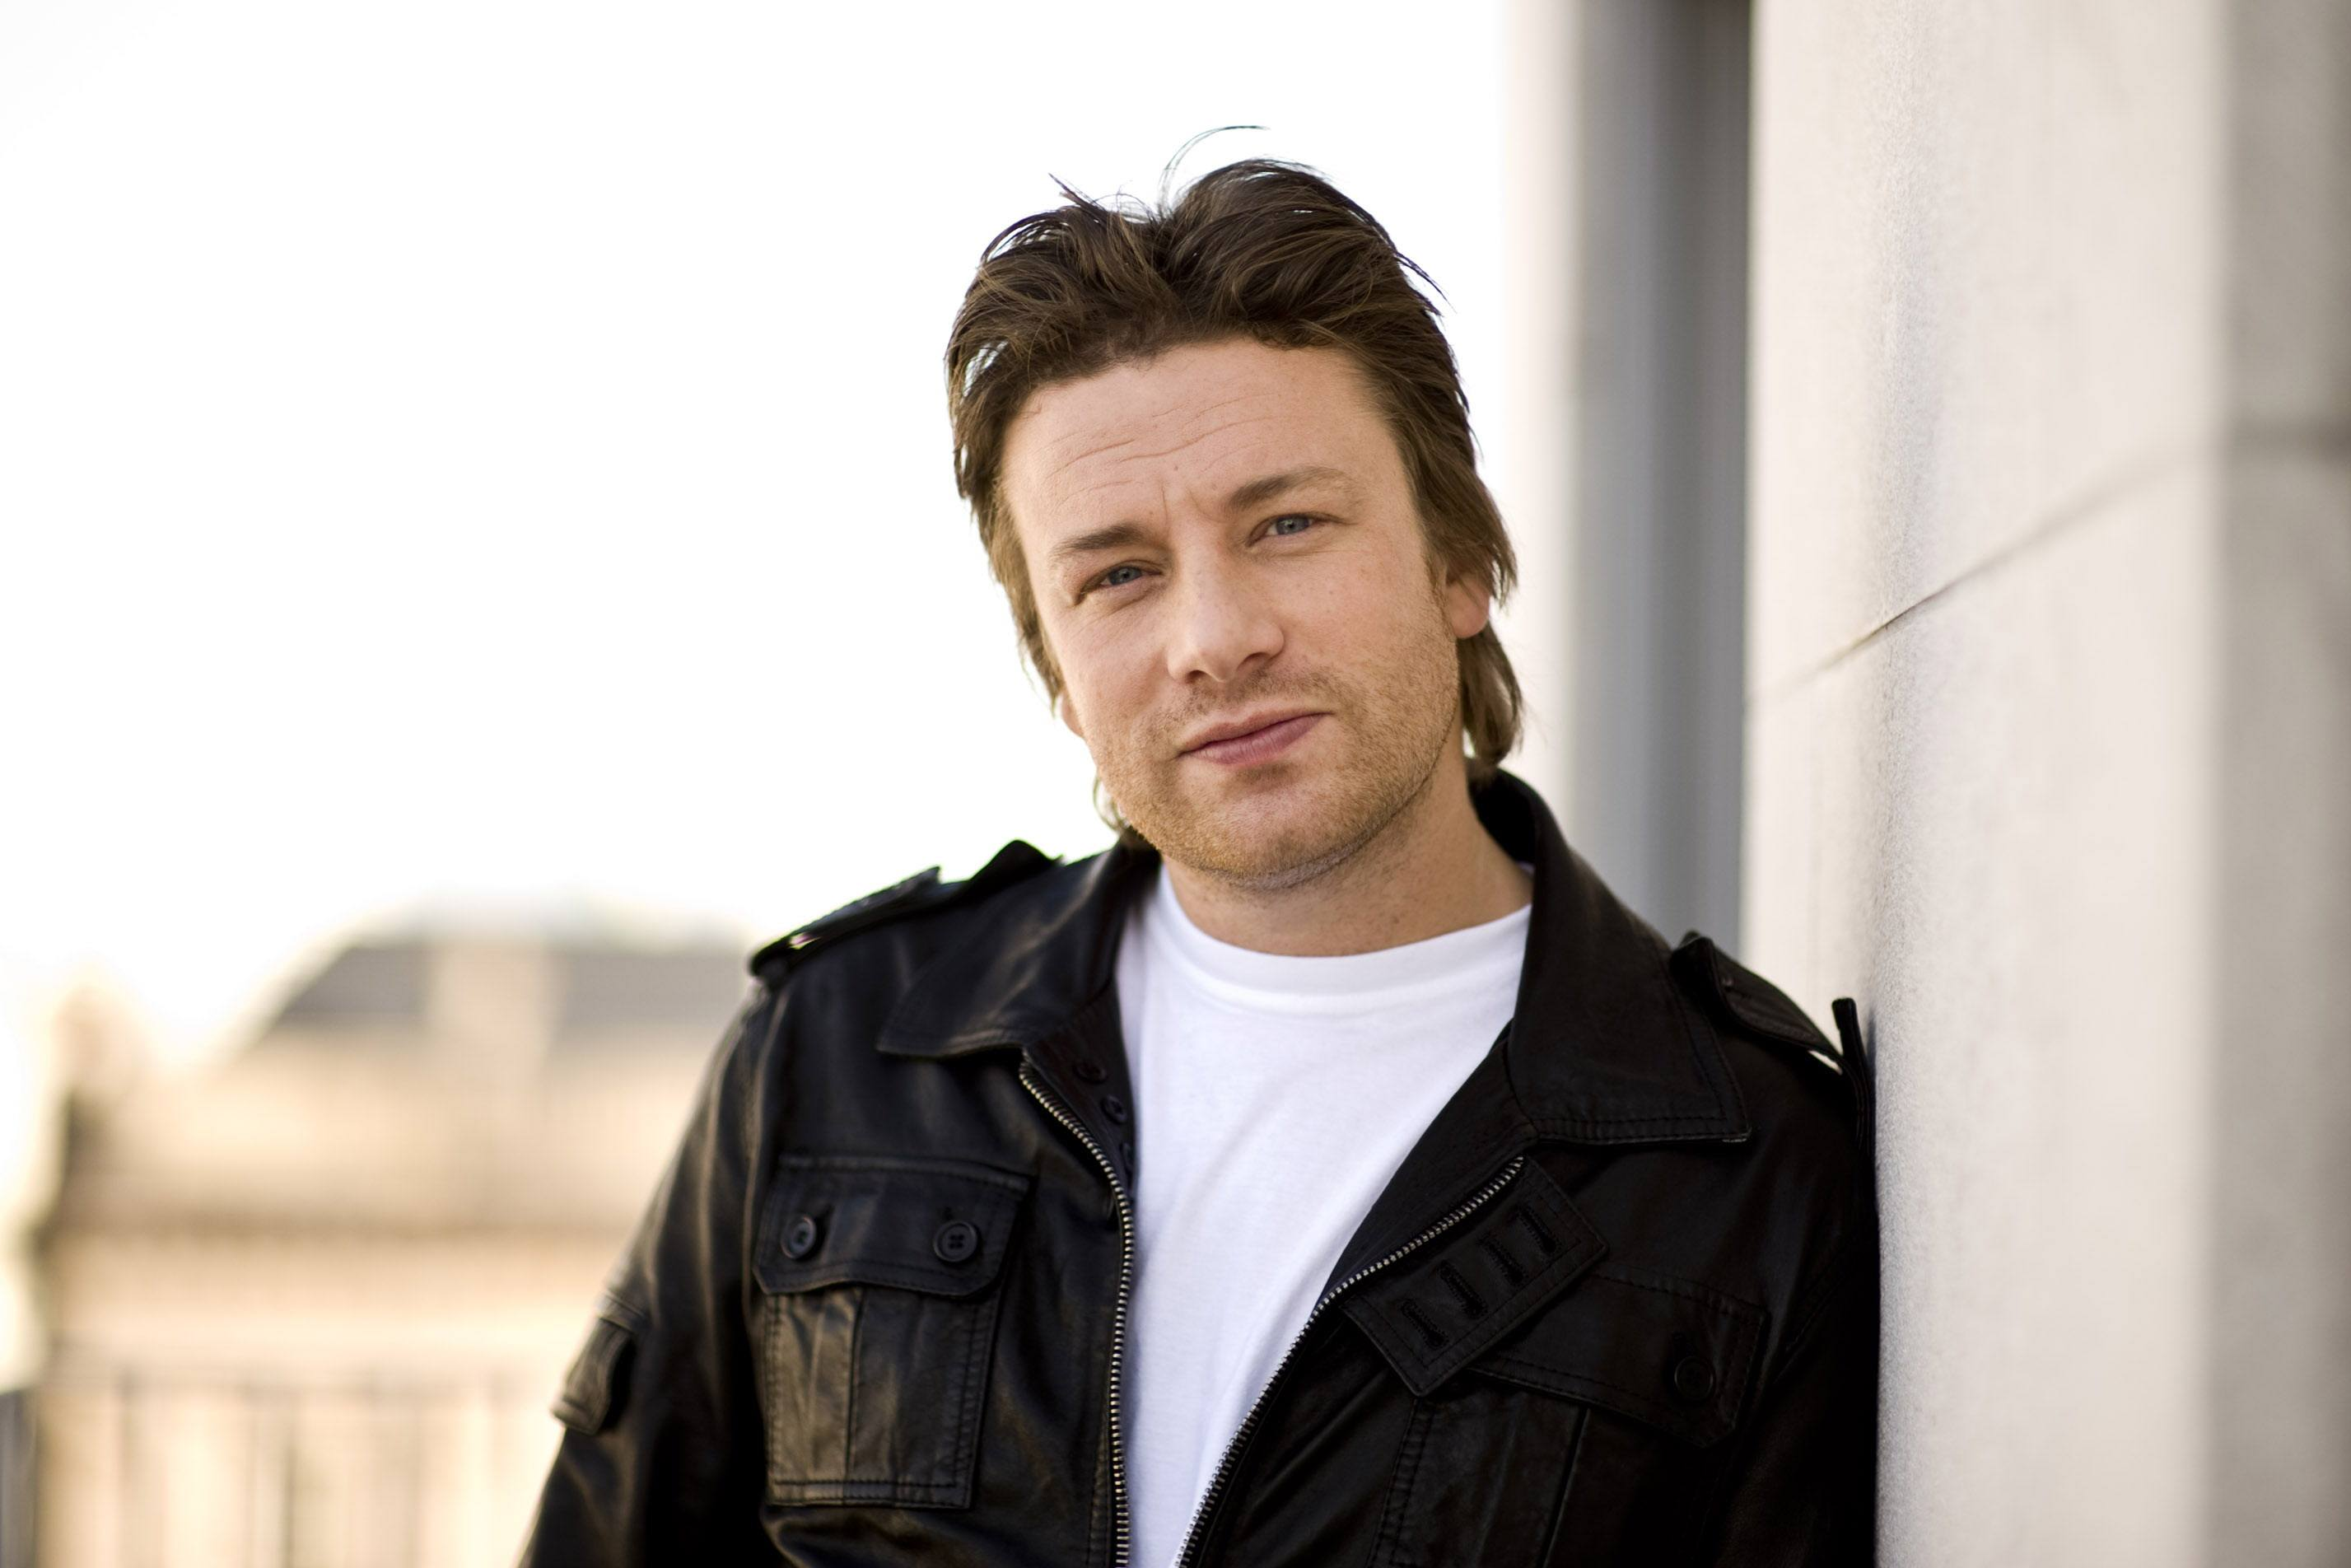 British celebrity Chef Jamie Oliver poses